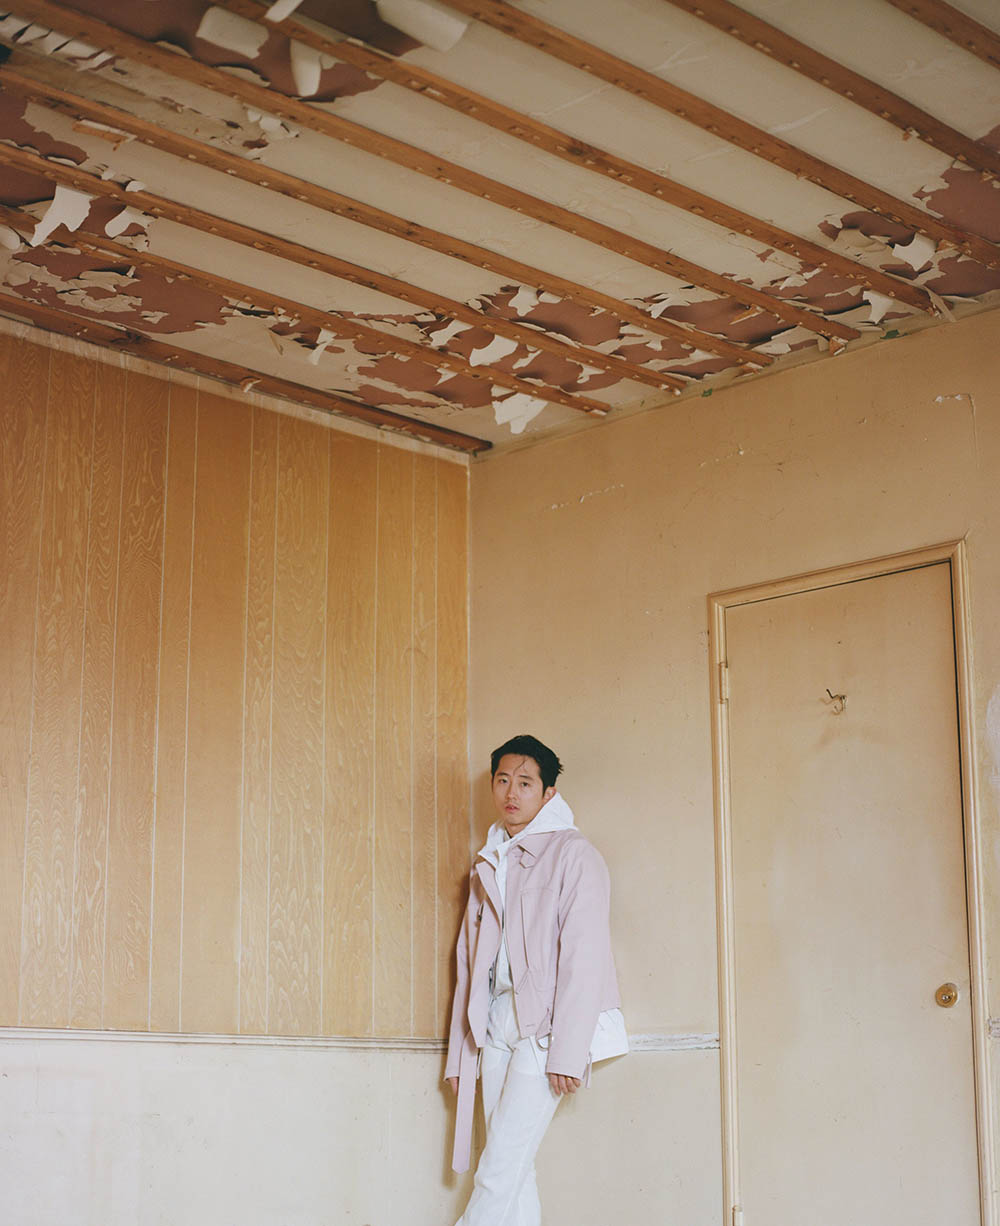 Steven Yeun by Shane Mccauley for Flaunt Magazine Issue 164